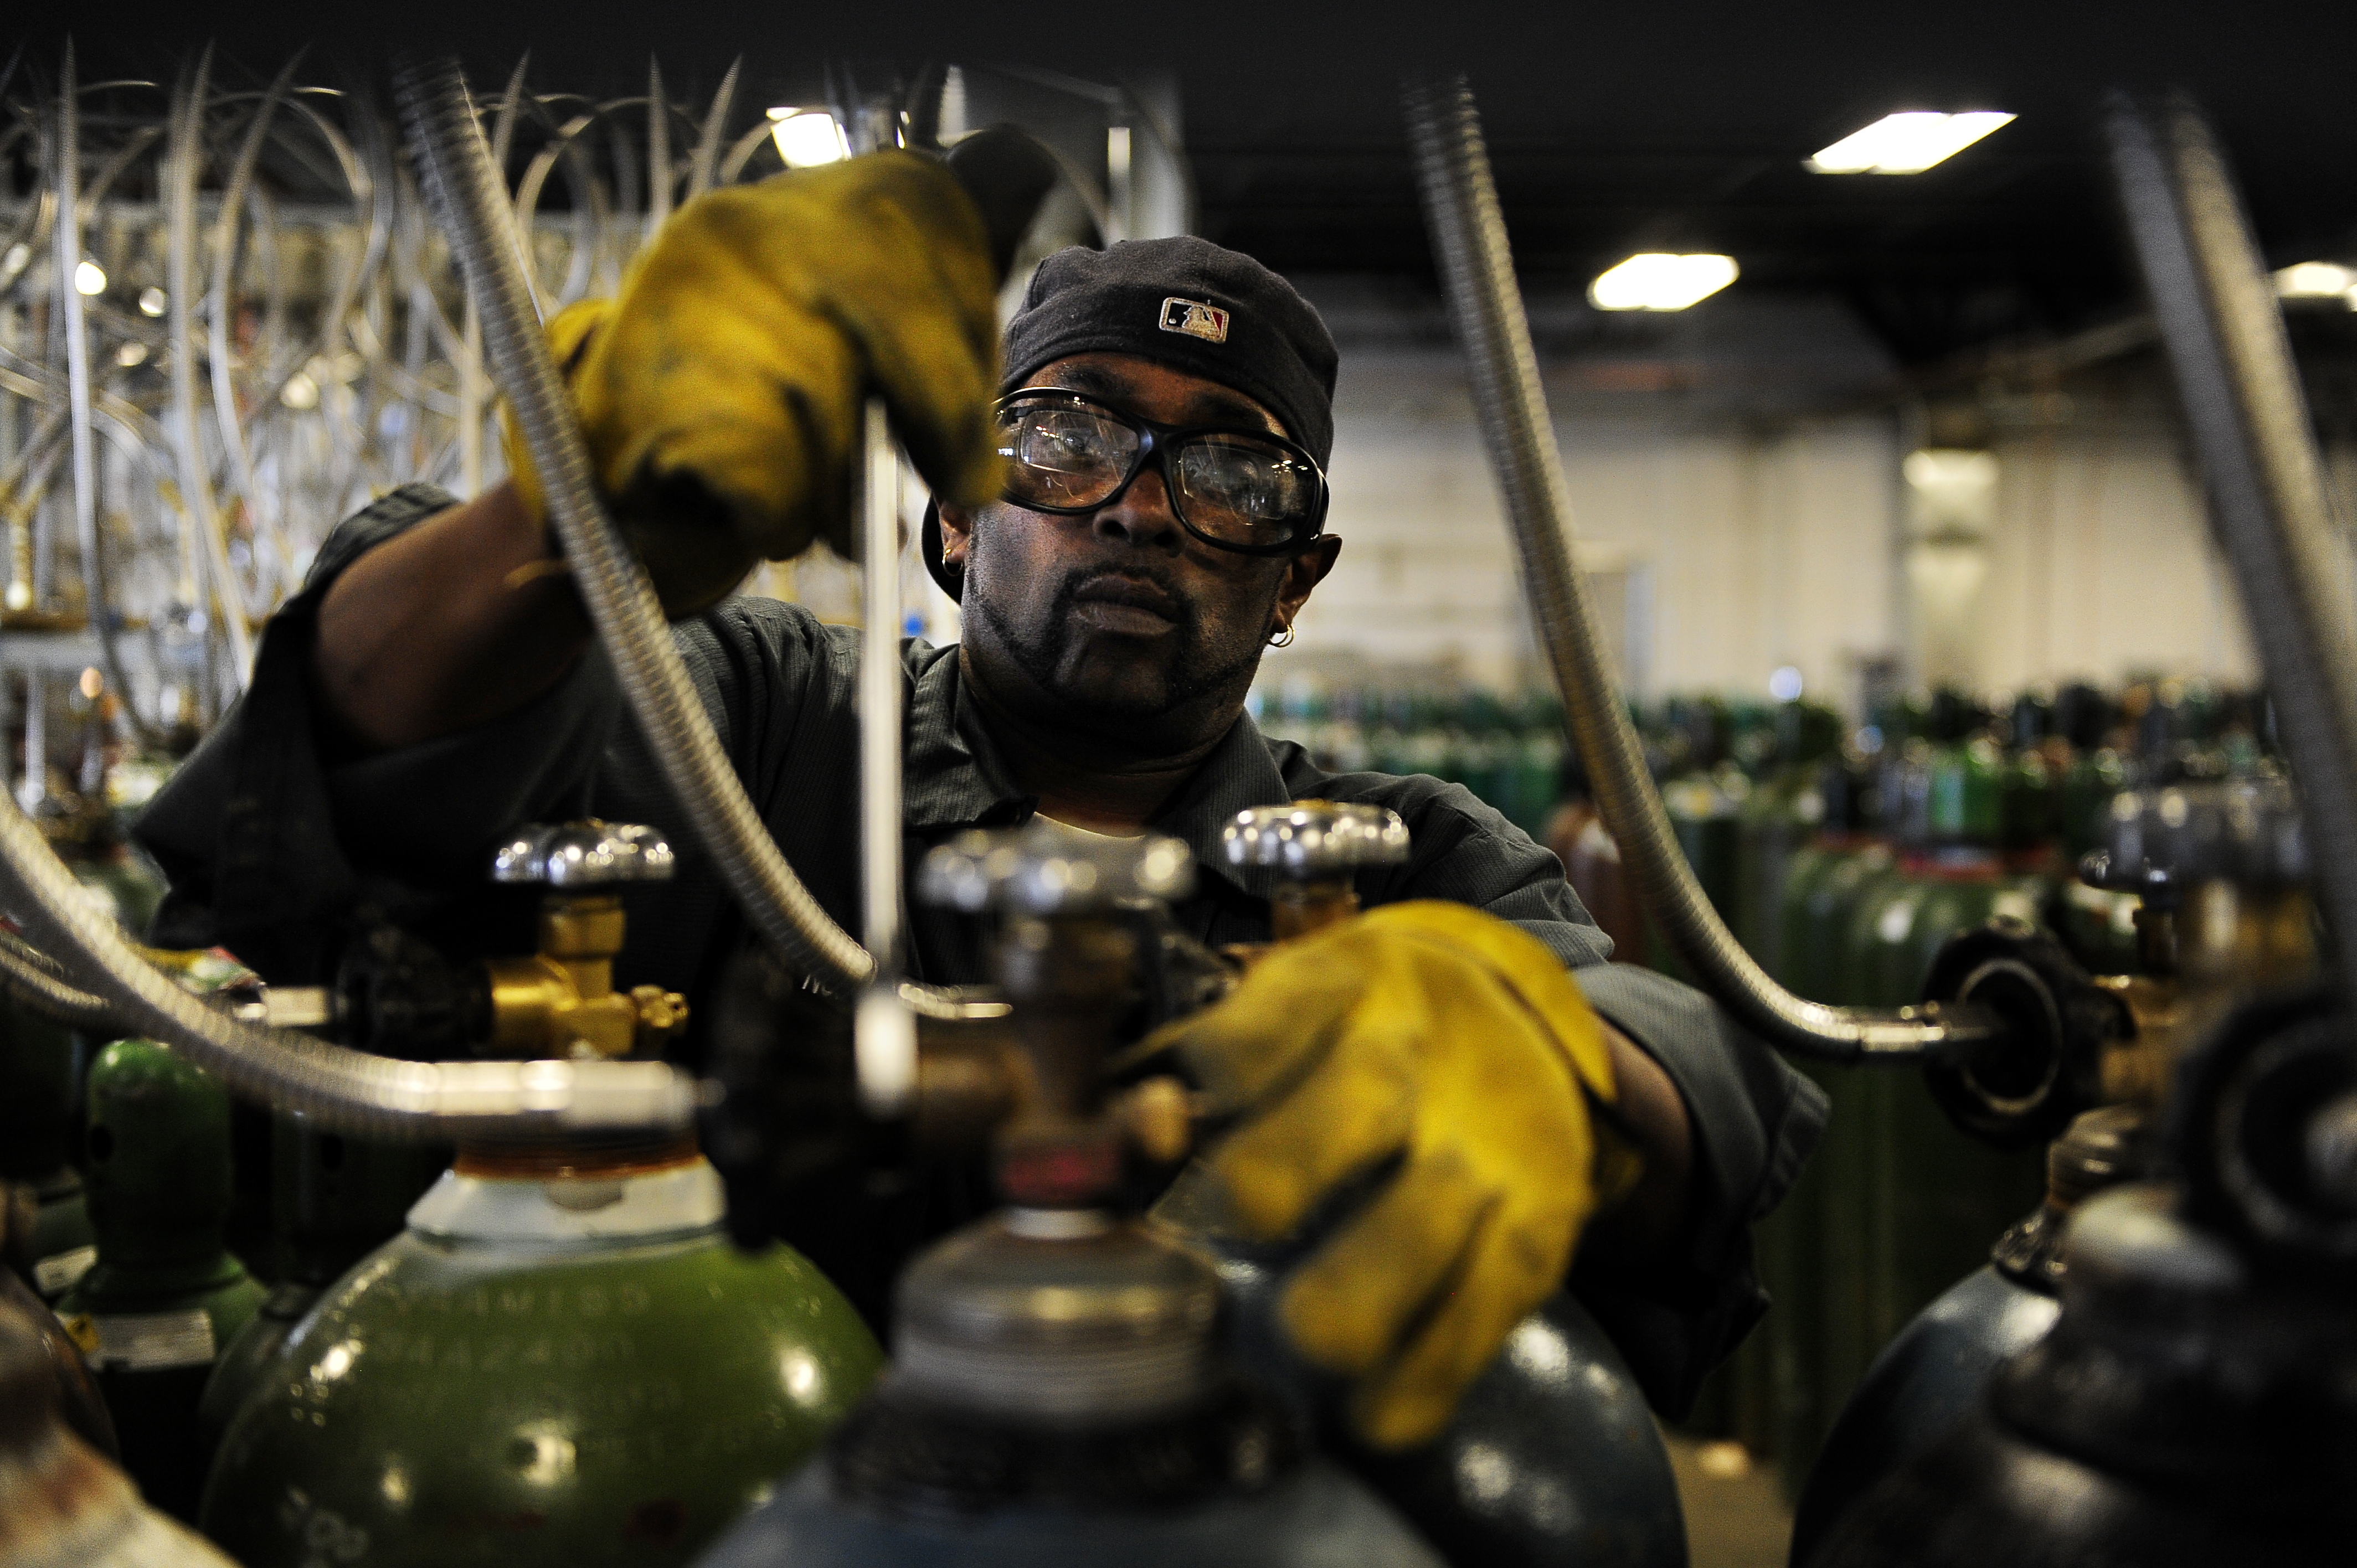 Cylinder filler Norman Coleman disconnects the lines from the nitrogen tanks he's just filled at the Airgas Intermountain Plant in Commerce City. Unemployment insurance tax rates are up about 40 percent this year compared to last in Colorado. But it all d